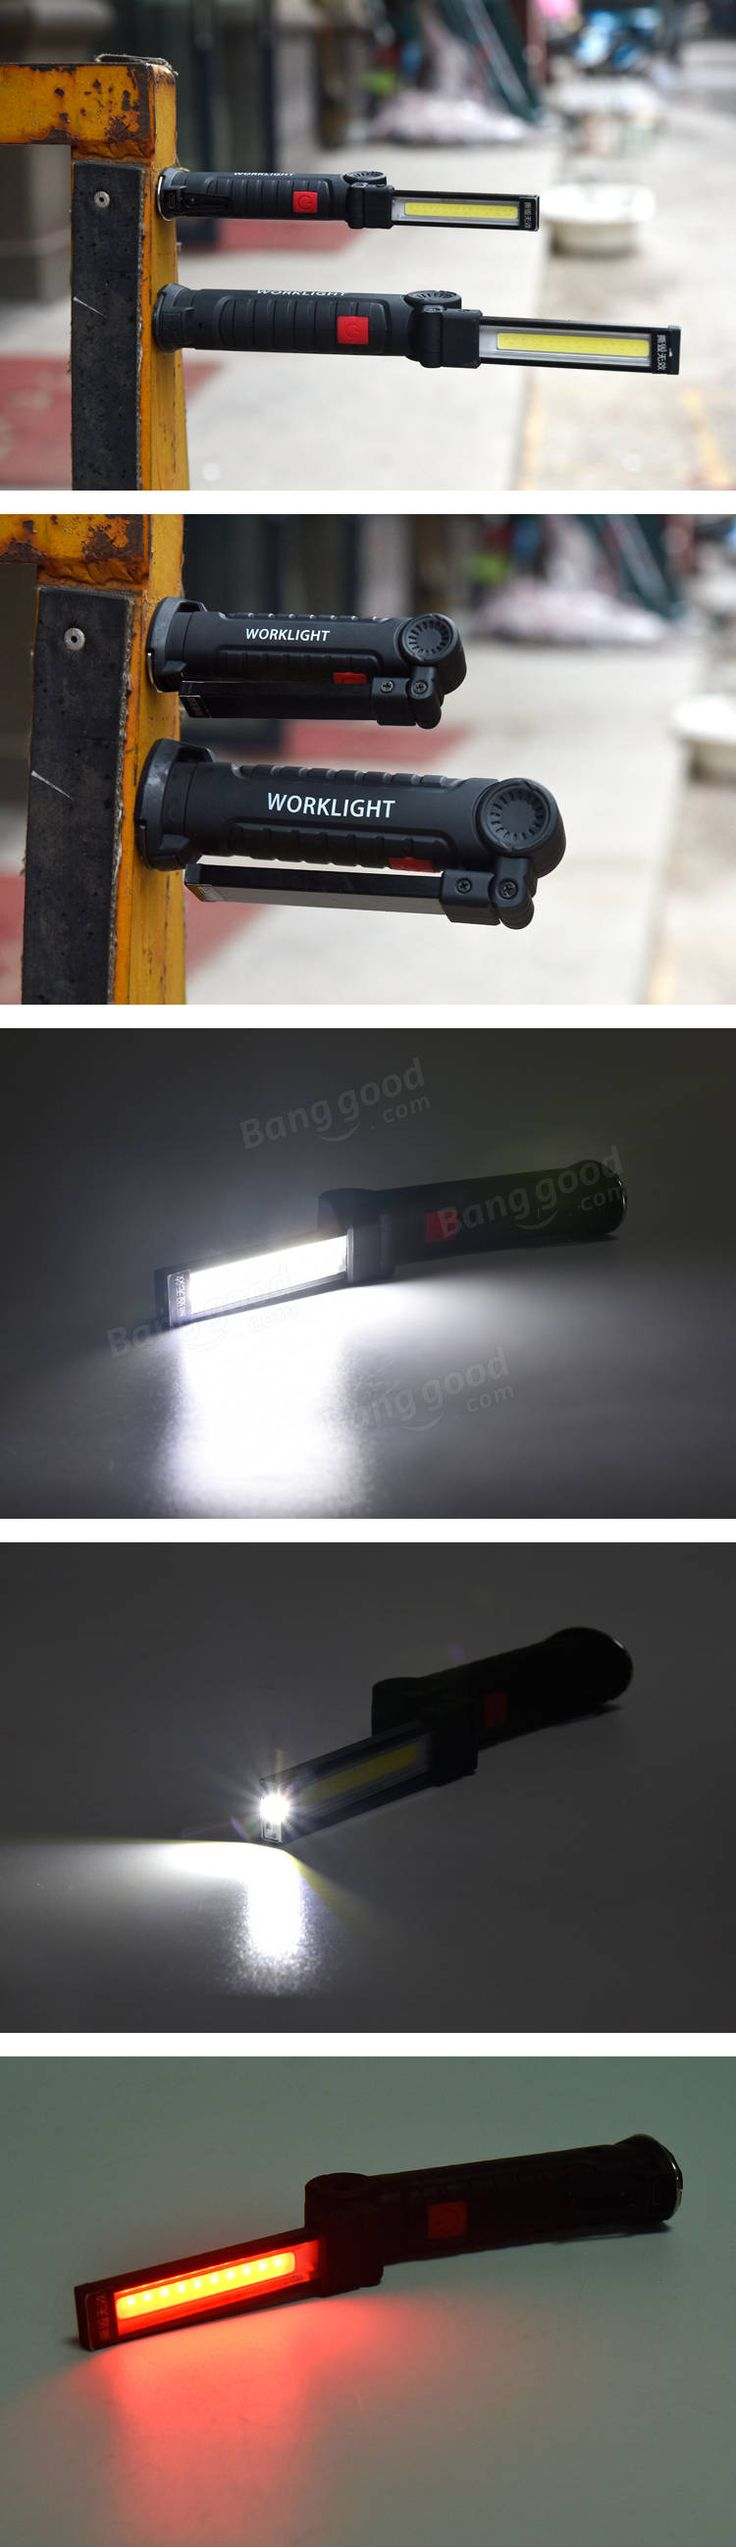 XANES 175B 360Degree Rotation USB Rechargeable COB+LED Emergency Worklight with Magnetic Tail Sale - Banggood.com  #flashlight #light